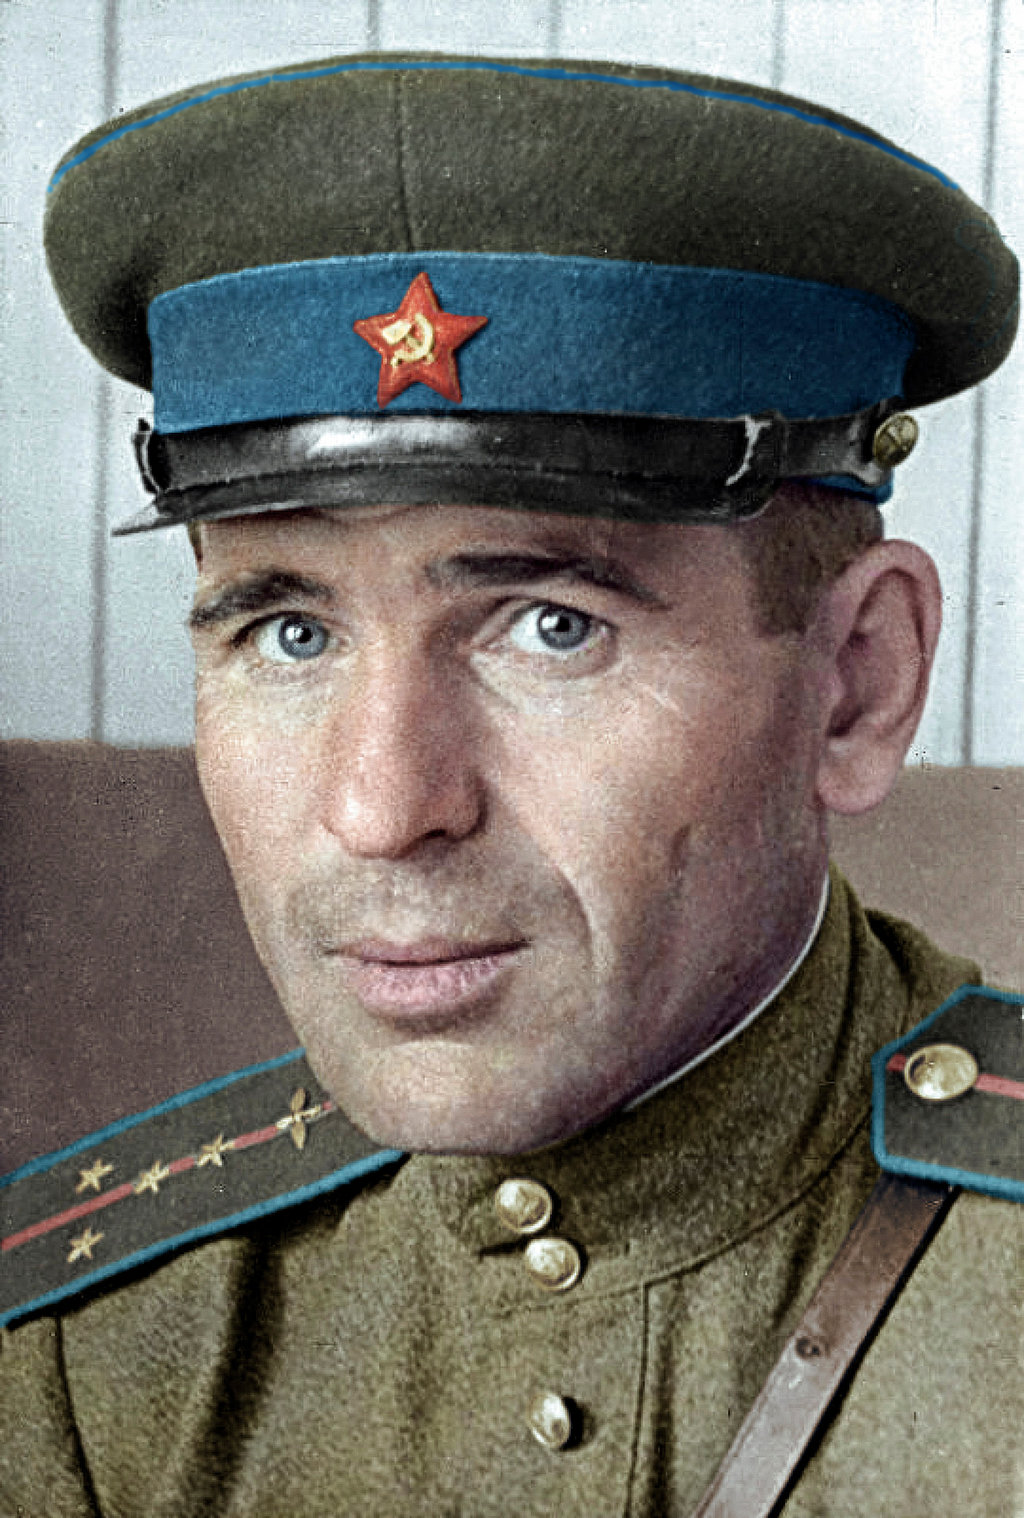 hero_of_the_soviet_union_gavriil_zuyev_by_klimbims-dbql9nc.jpg